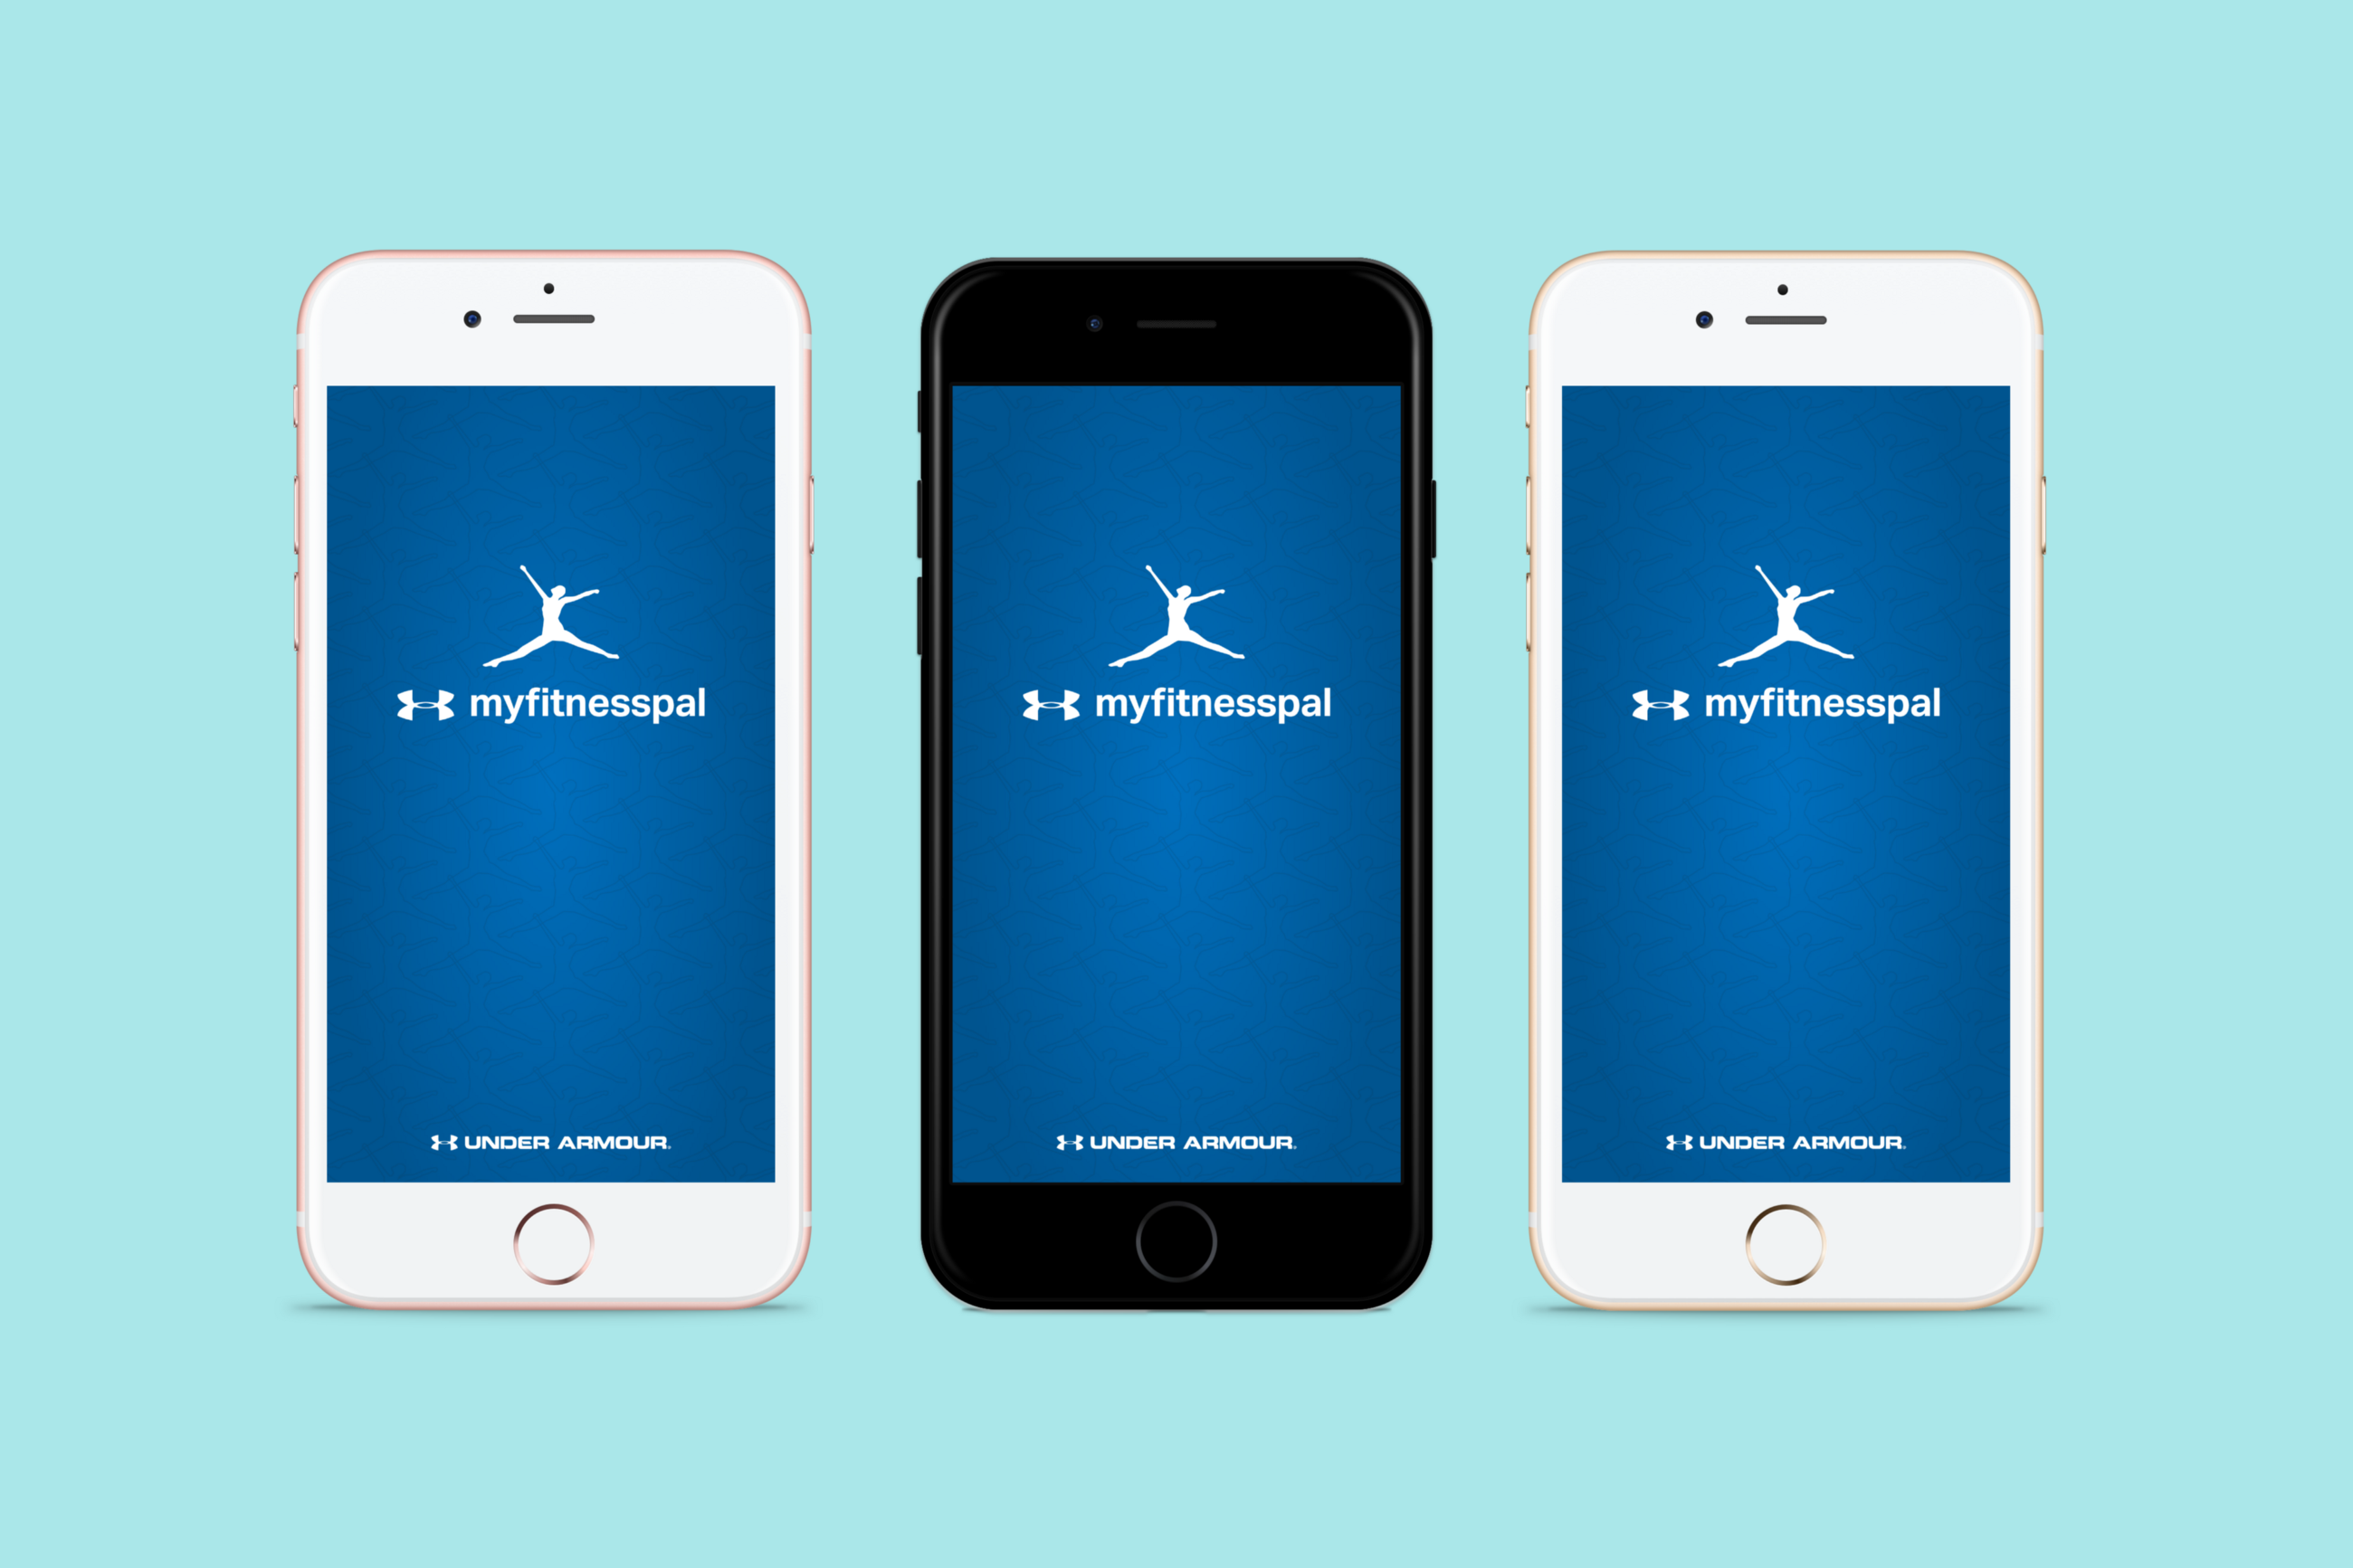 Myfitnesspal App Redesign Matthew Jang Medium